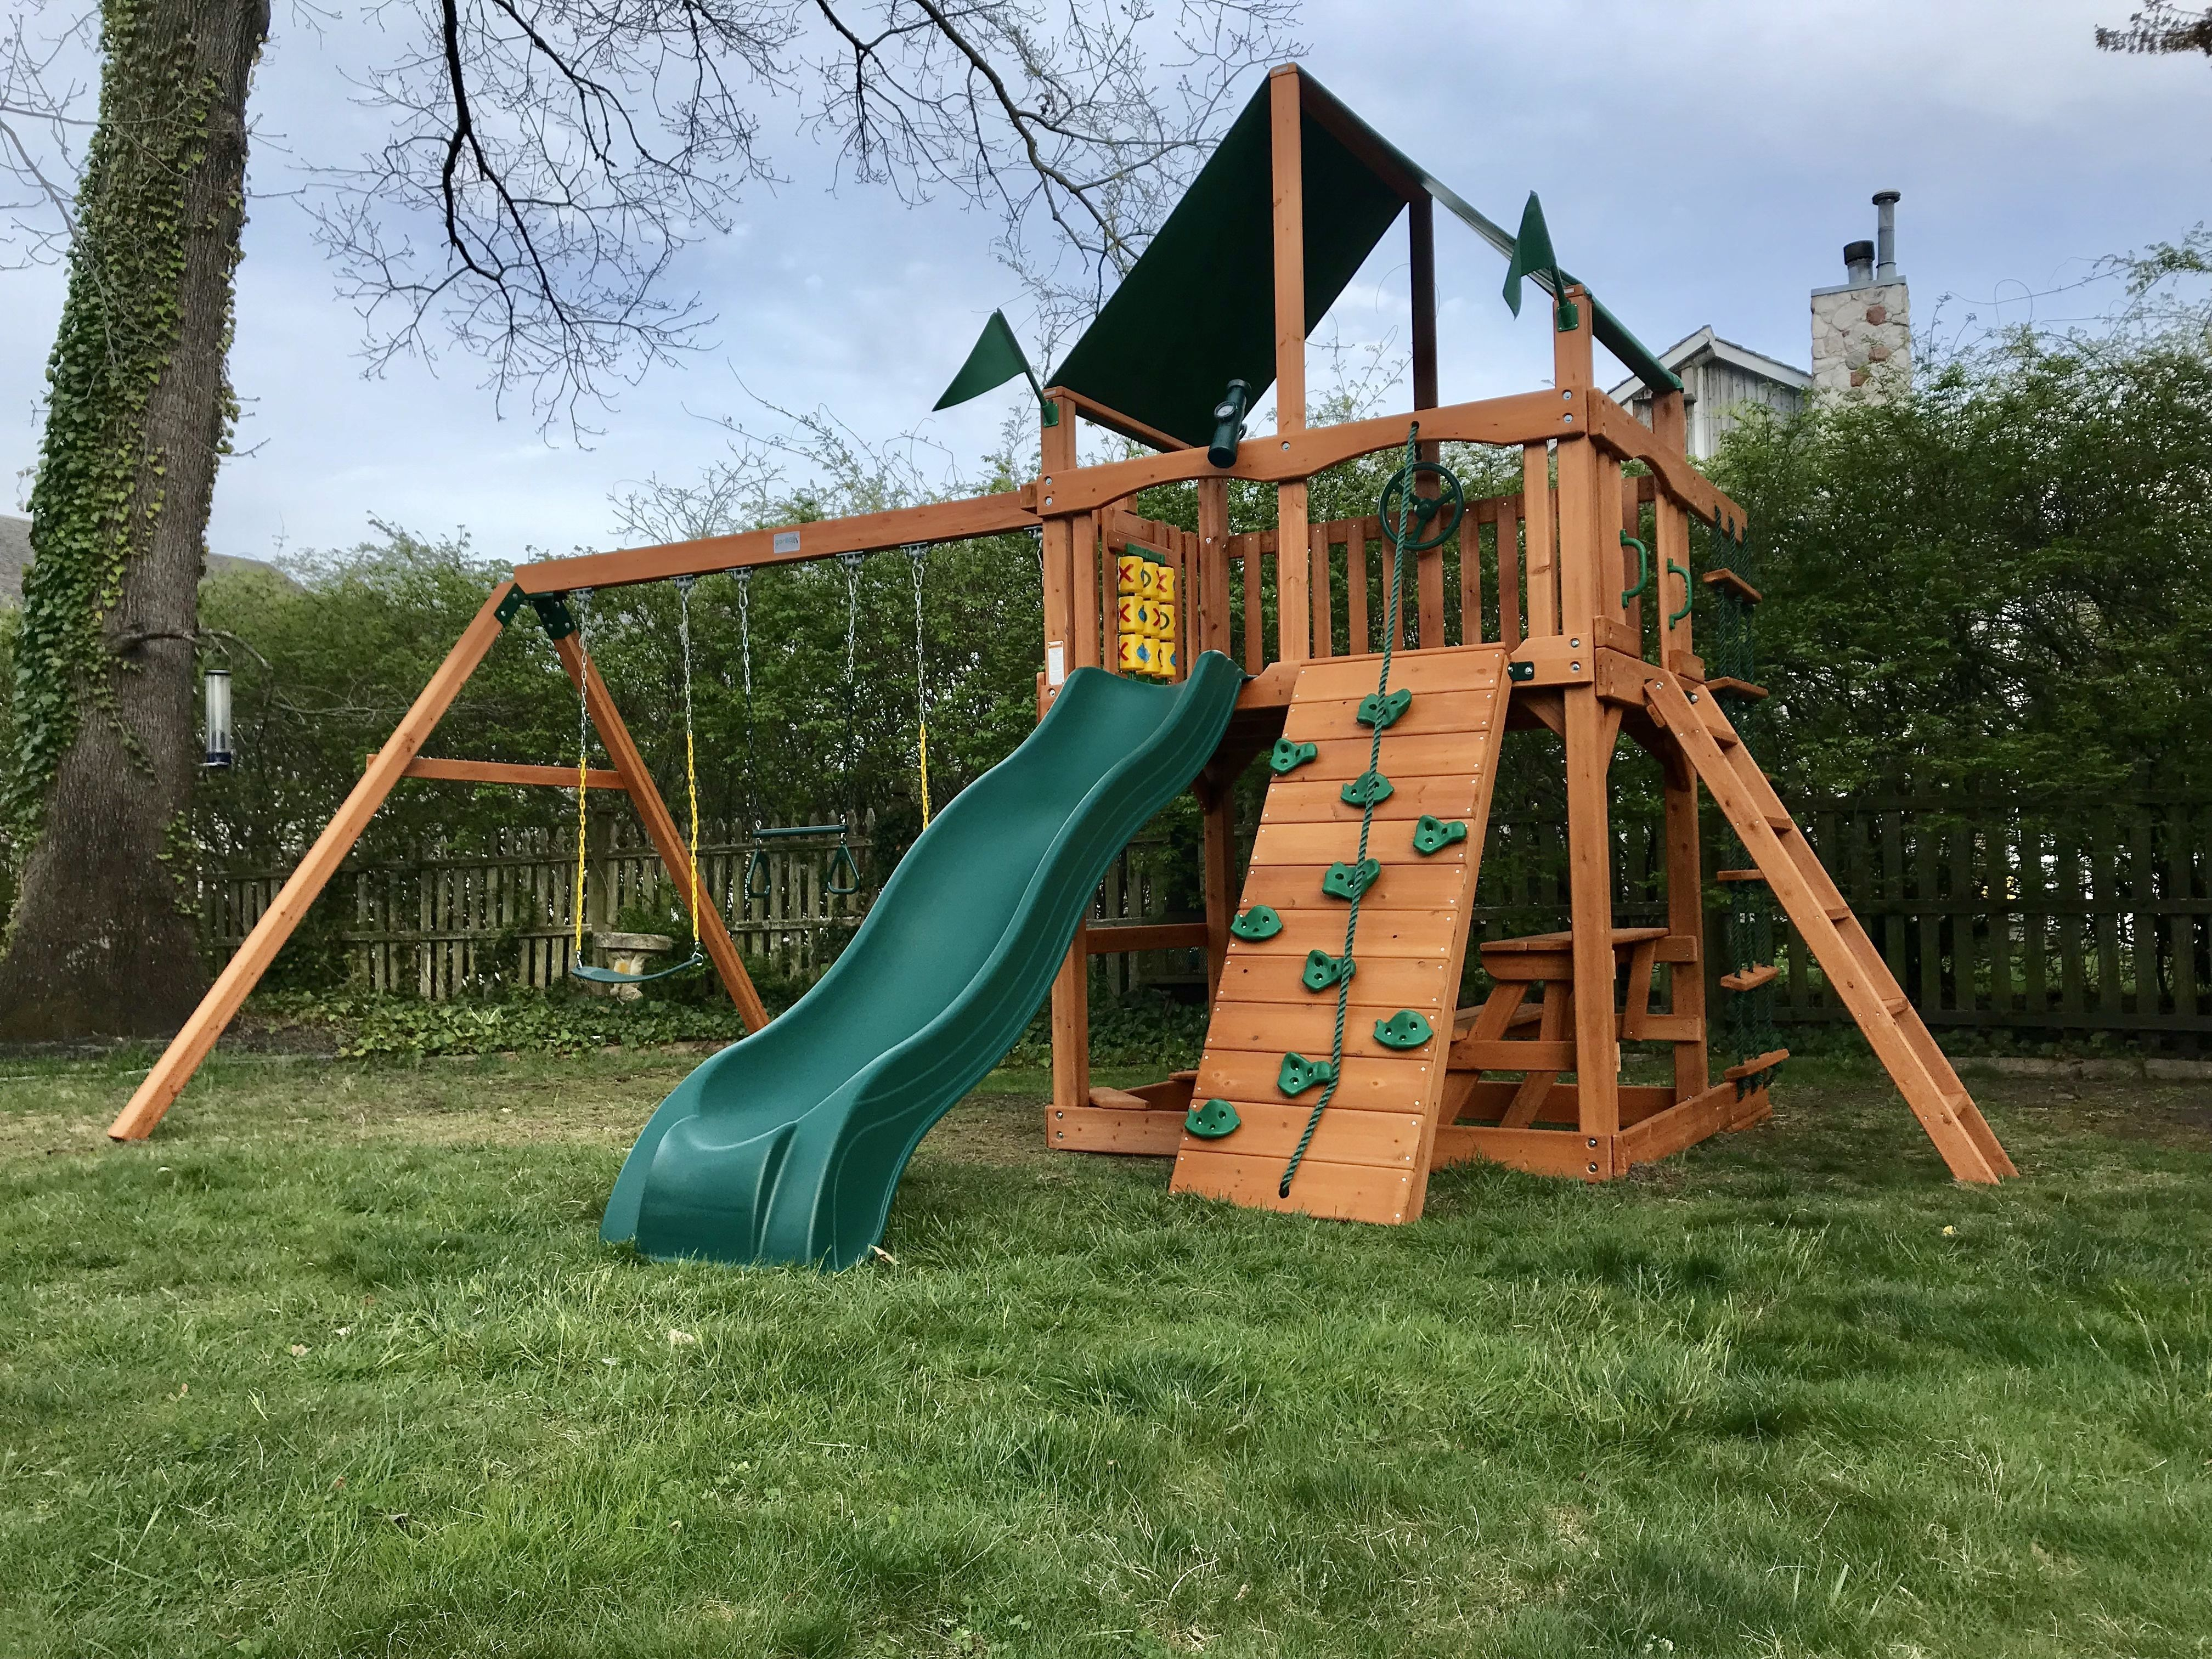 Gorilla Playsets Chateau Deluxe Green Vinyl Swing Set Beautiful